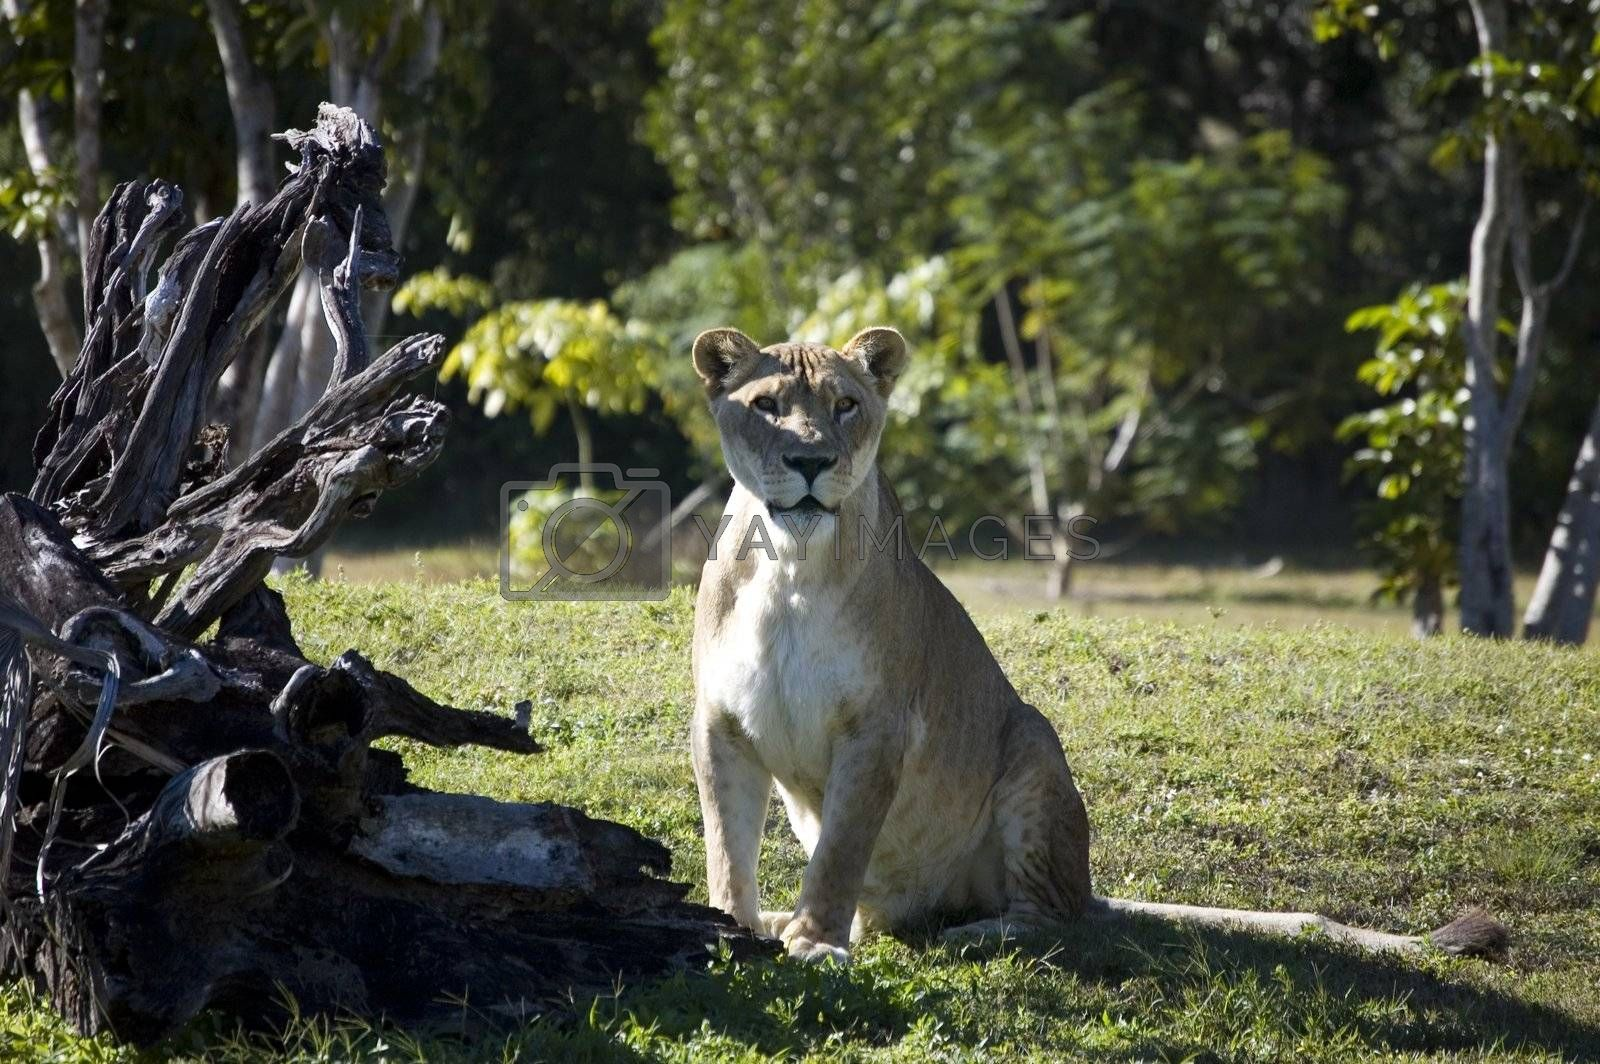 Lioness sitting next to a overturned tree staring at viewer